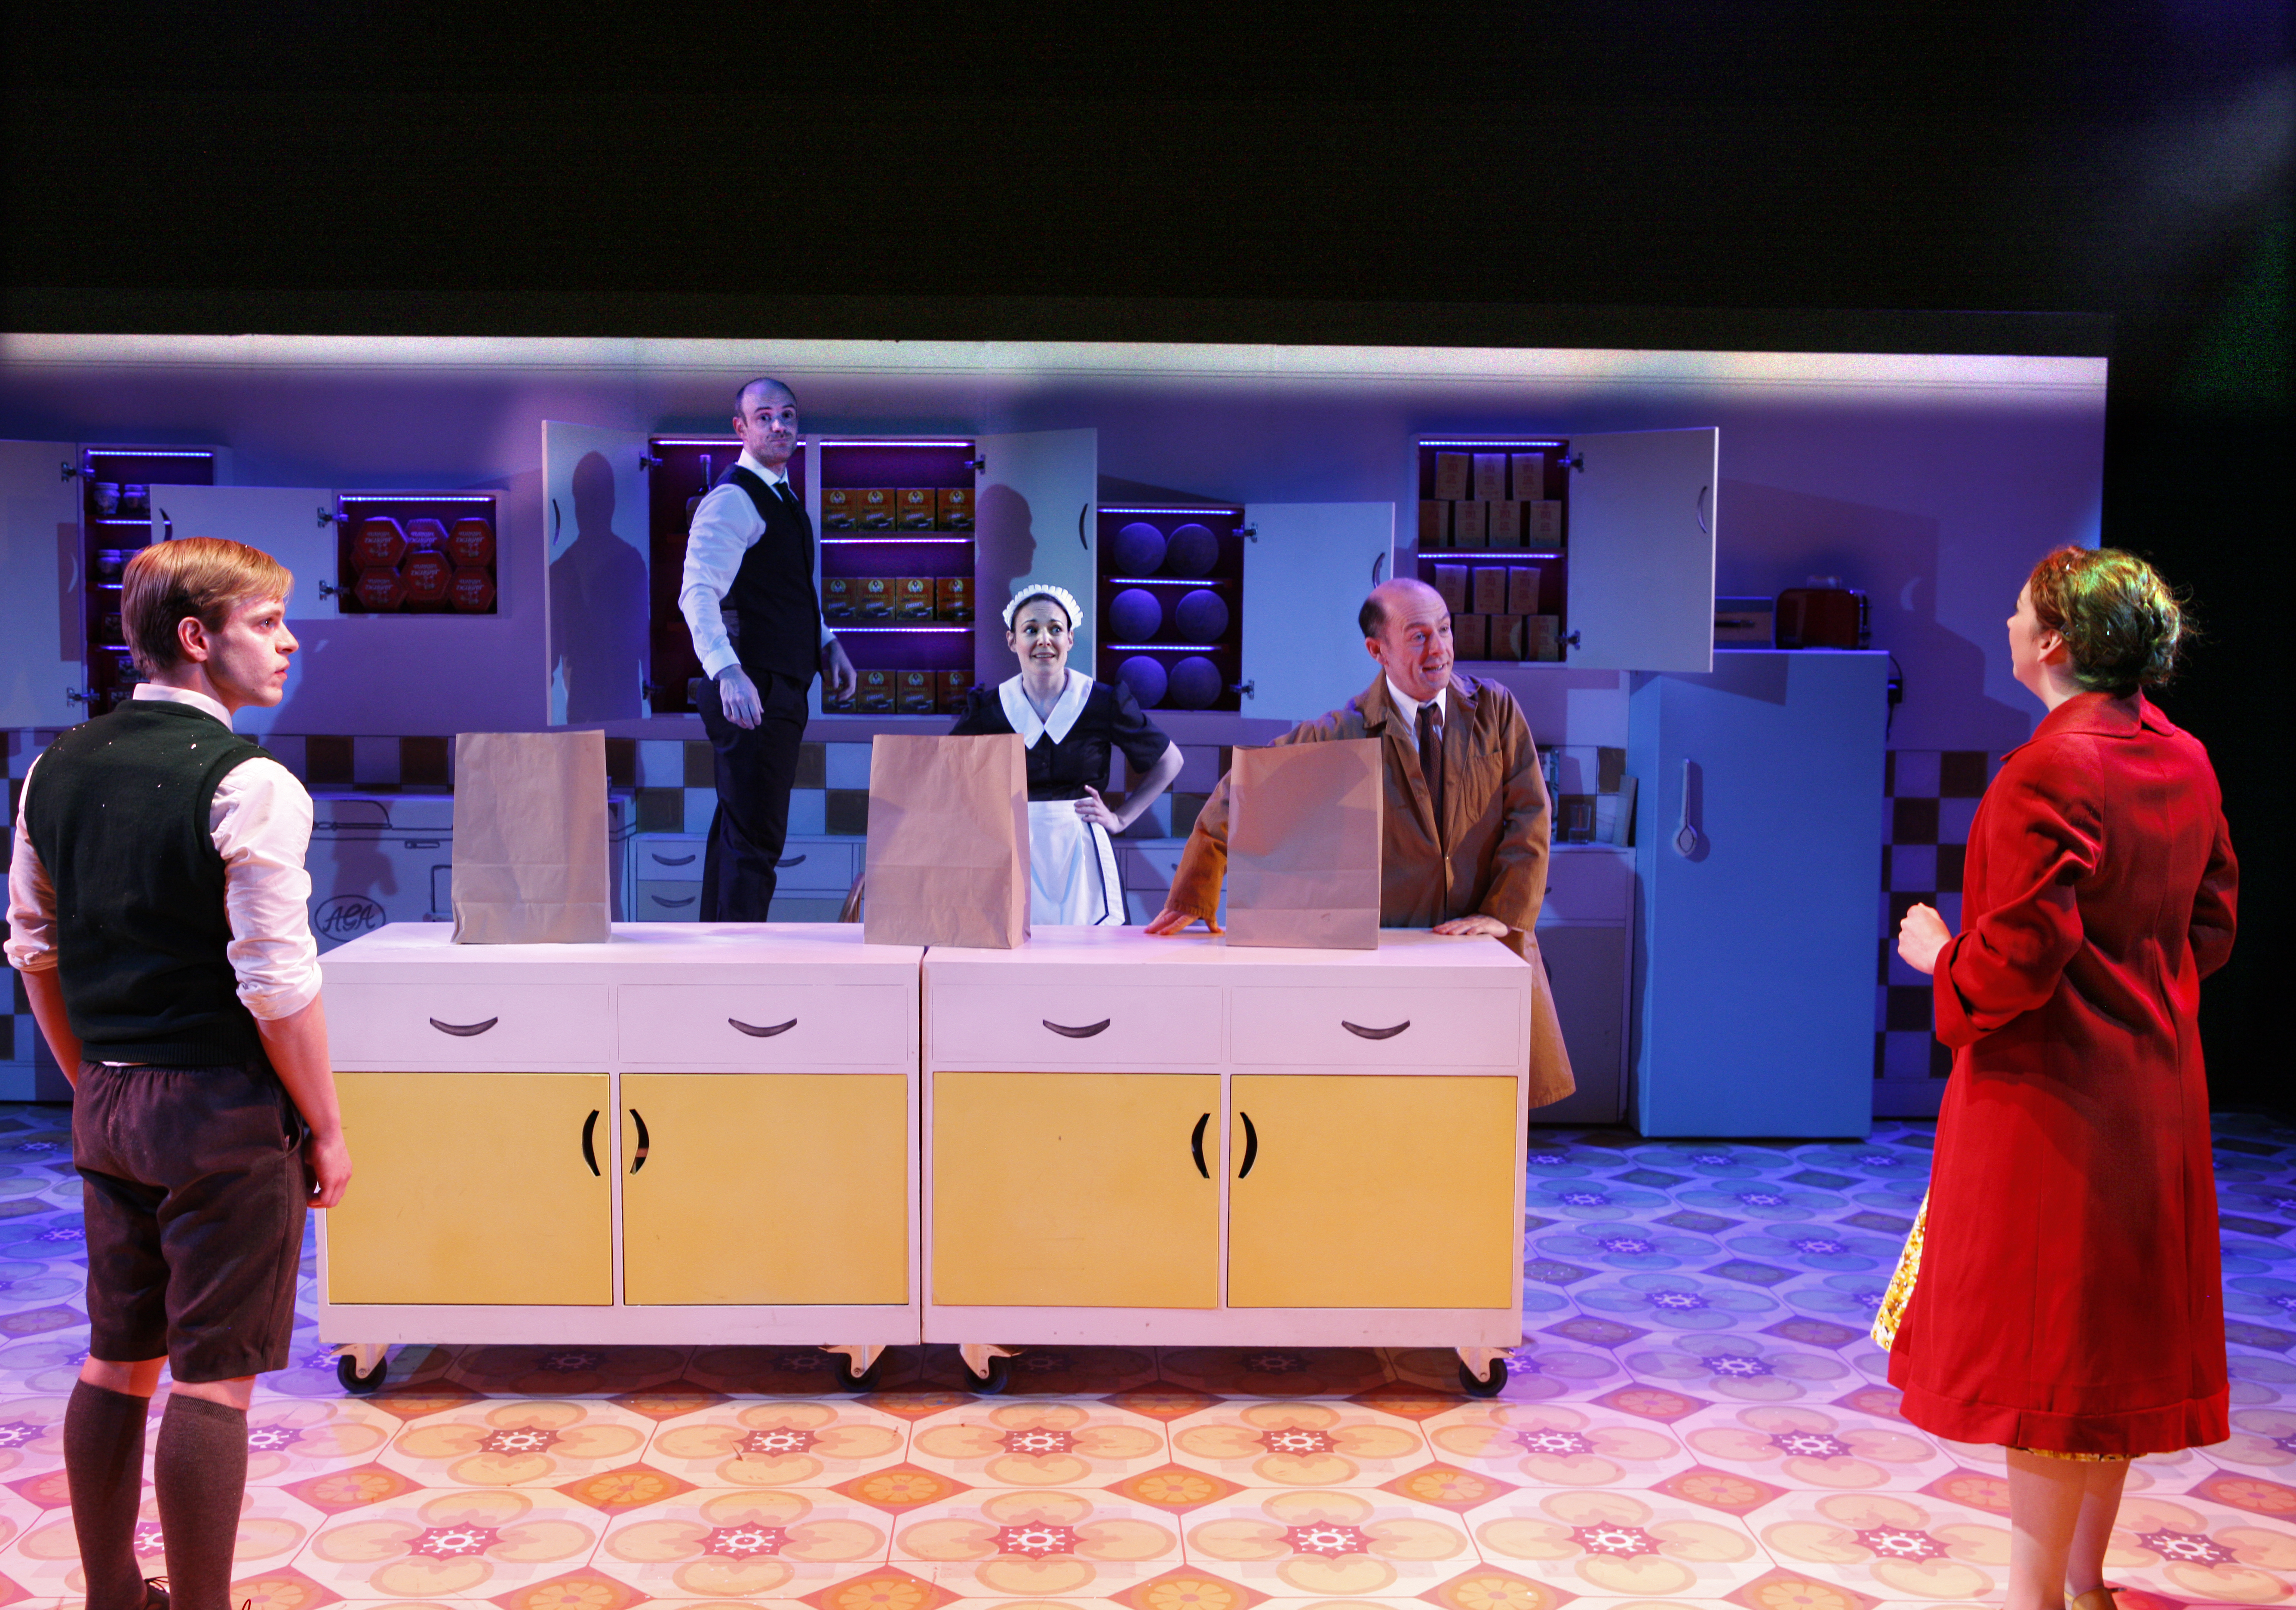 (L-R) Giles Cooper as Nigel Slater, Jake Ferretti as Josh, Marie Lawrence as Joan, Stephen Ventura as Dad, Lizzy Muncey as Mum (c) Simon Annand